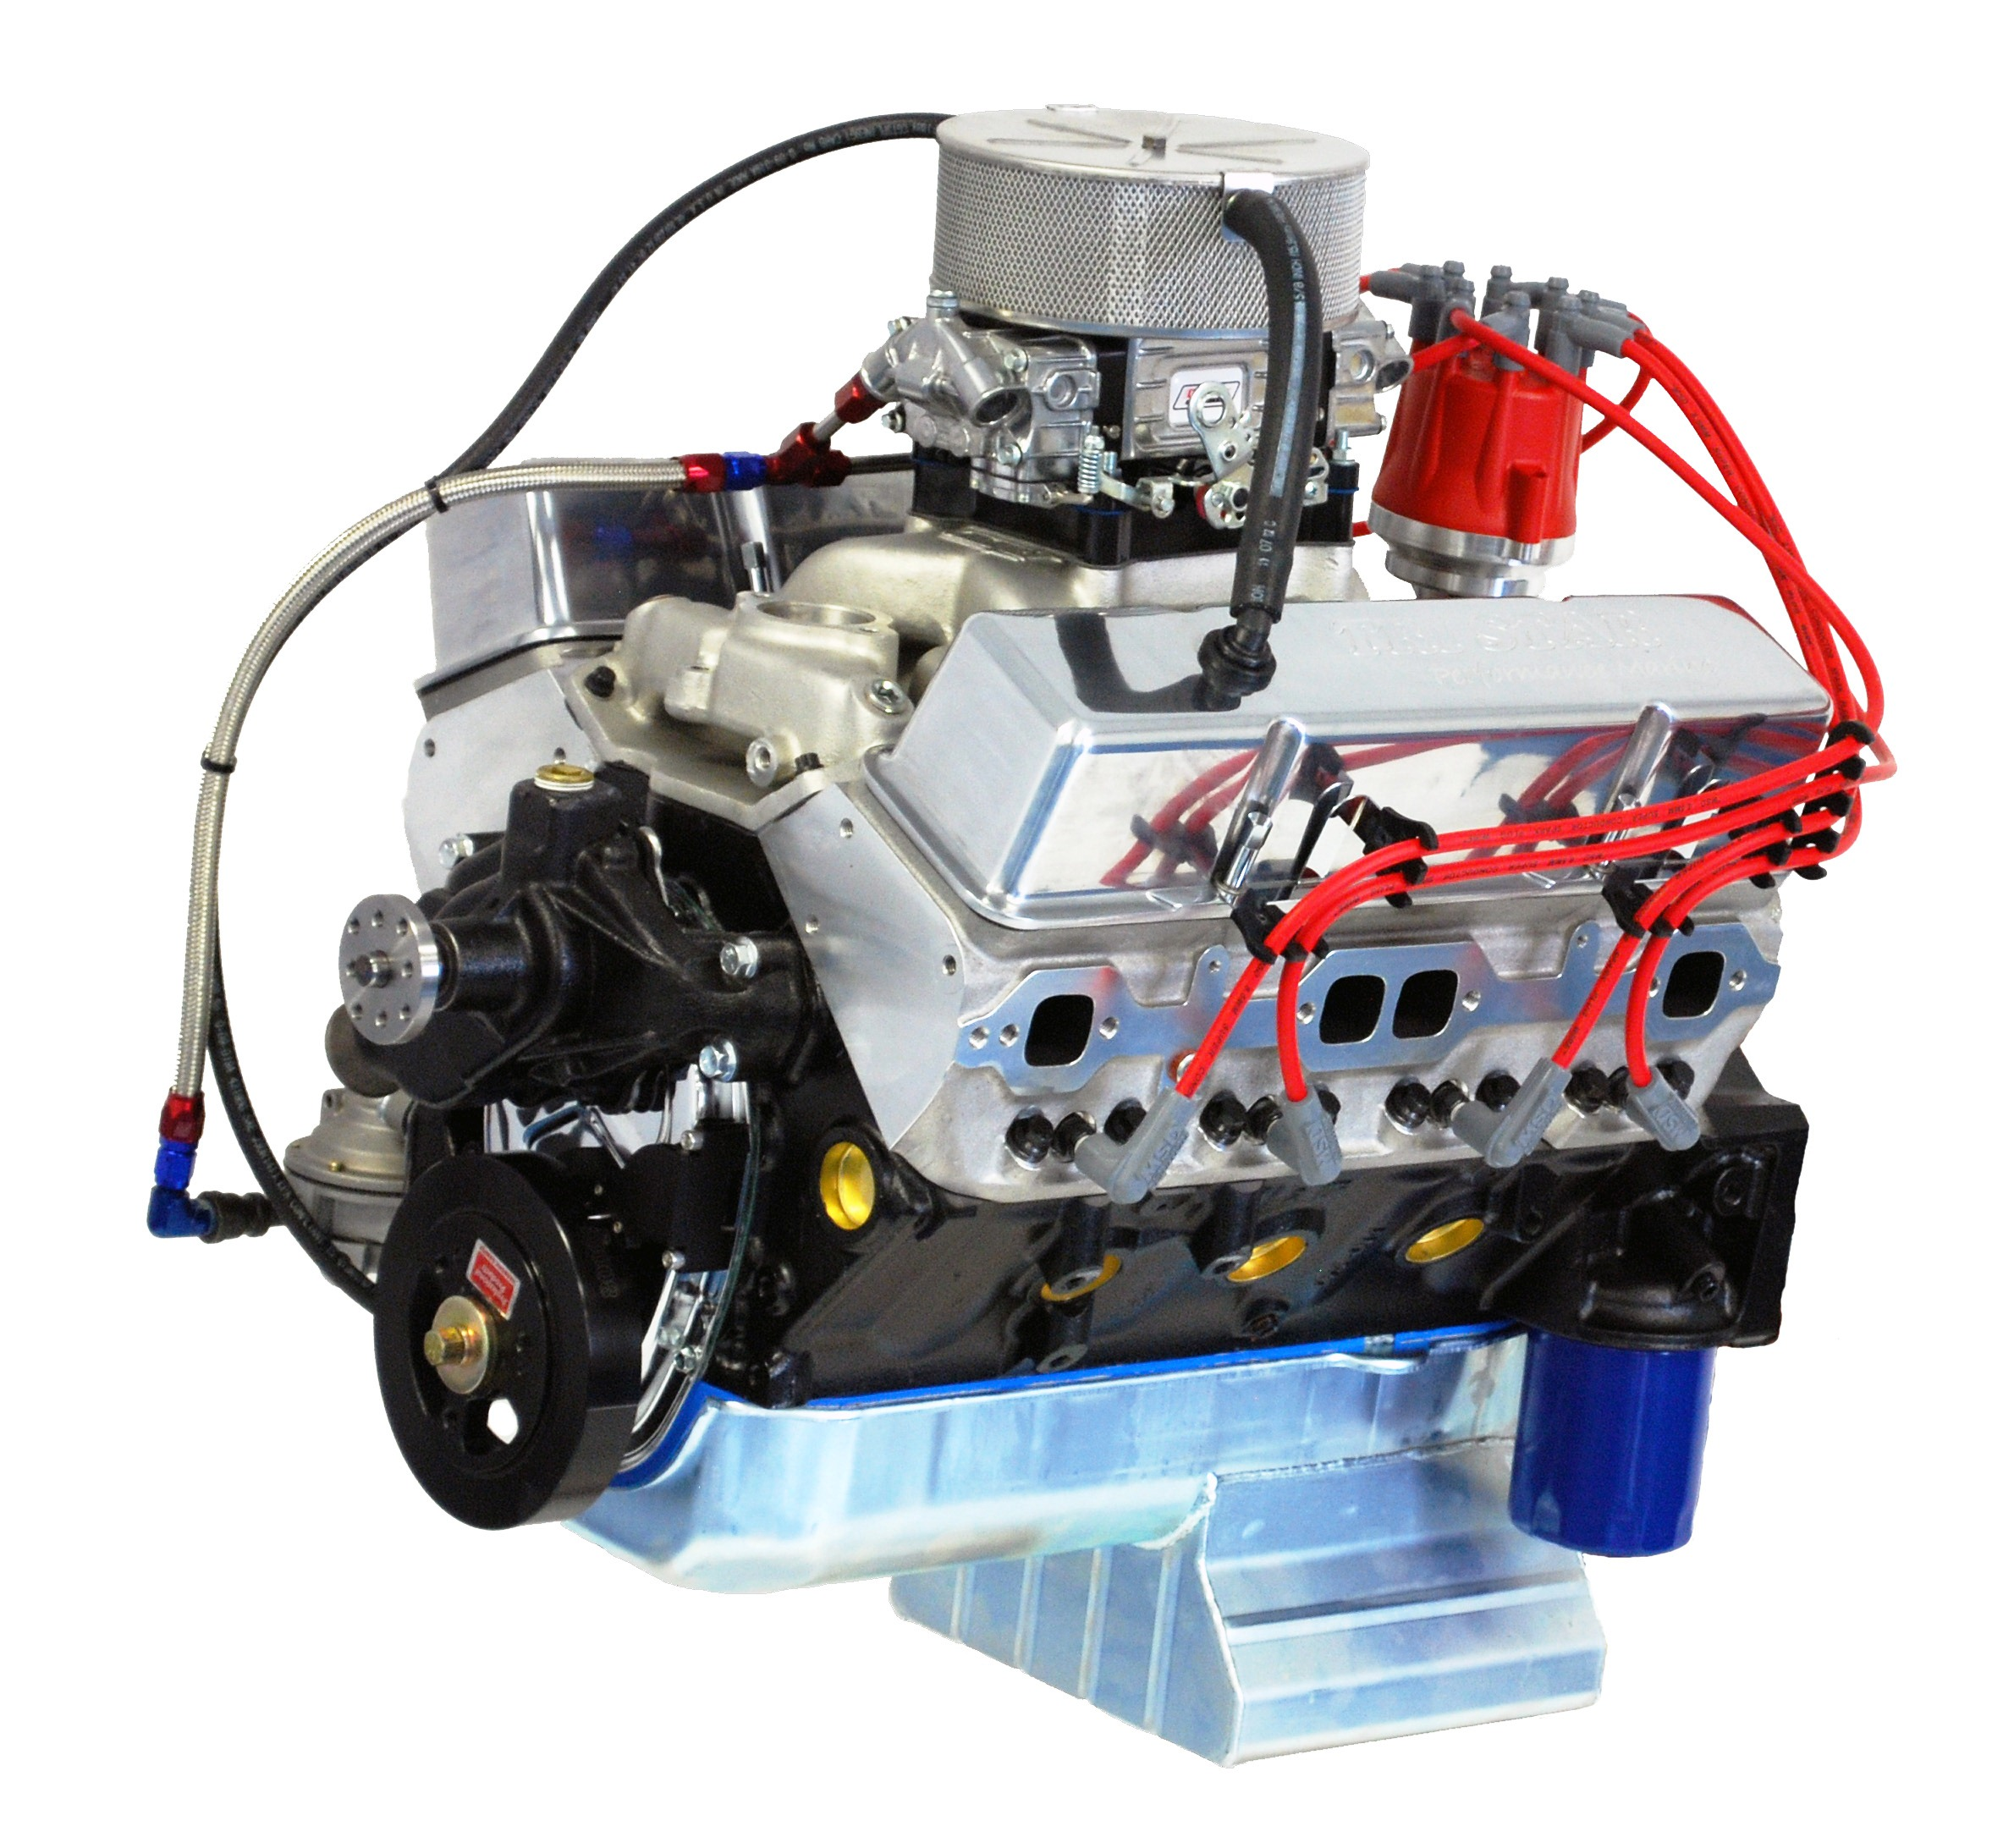 High Performance Marine Engines